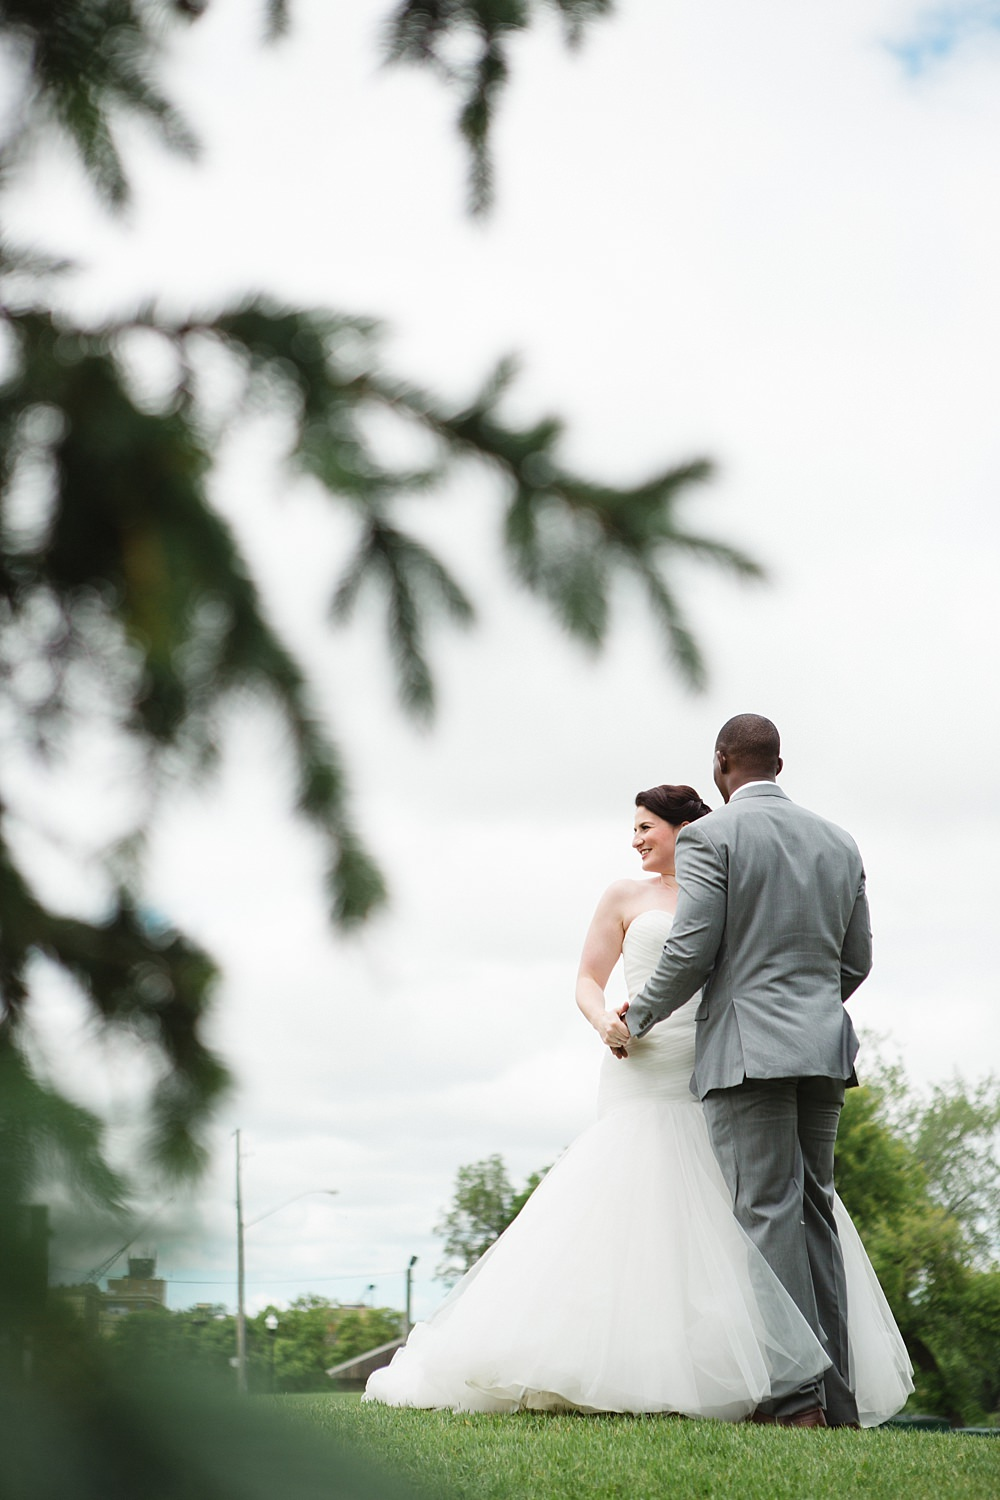 wedding-winnipeg-manitoba-canada-18-25